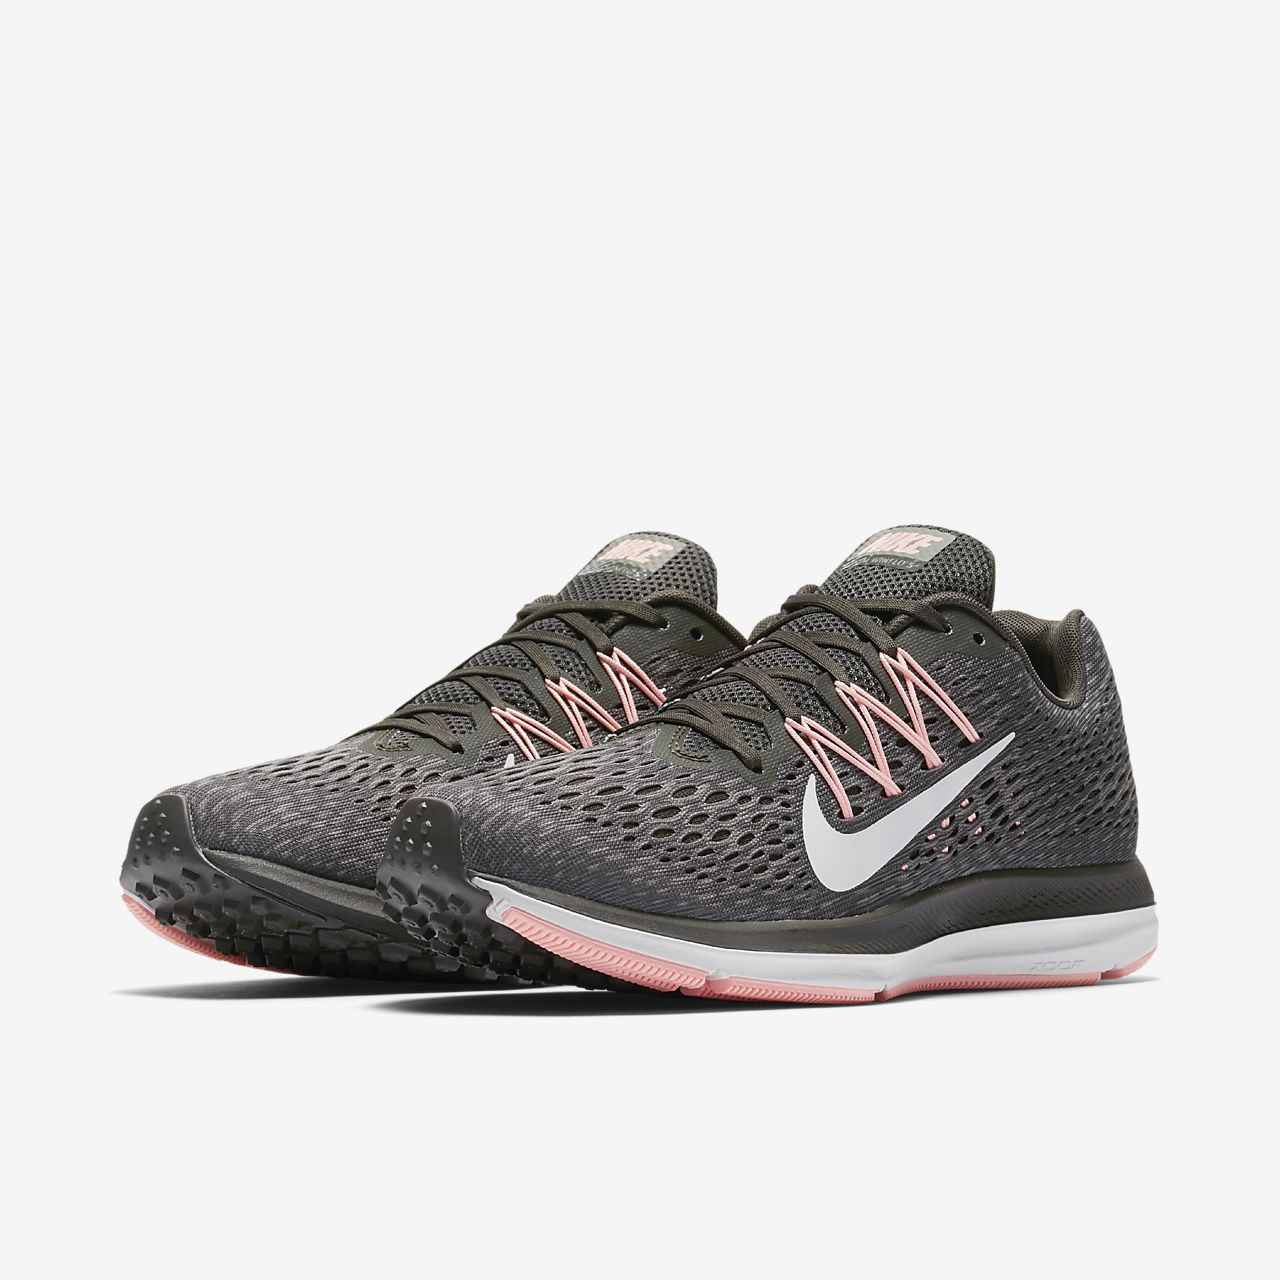 factory authentic 00e9f fe0d1 Nike Air Zoom Winflo 5 Women's Running Shoe